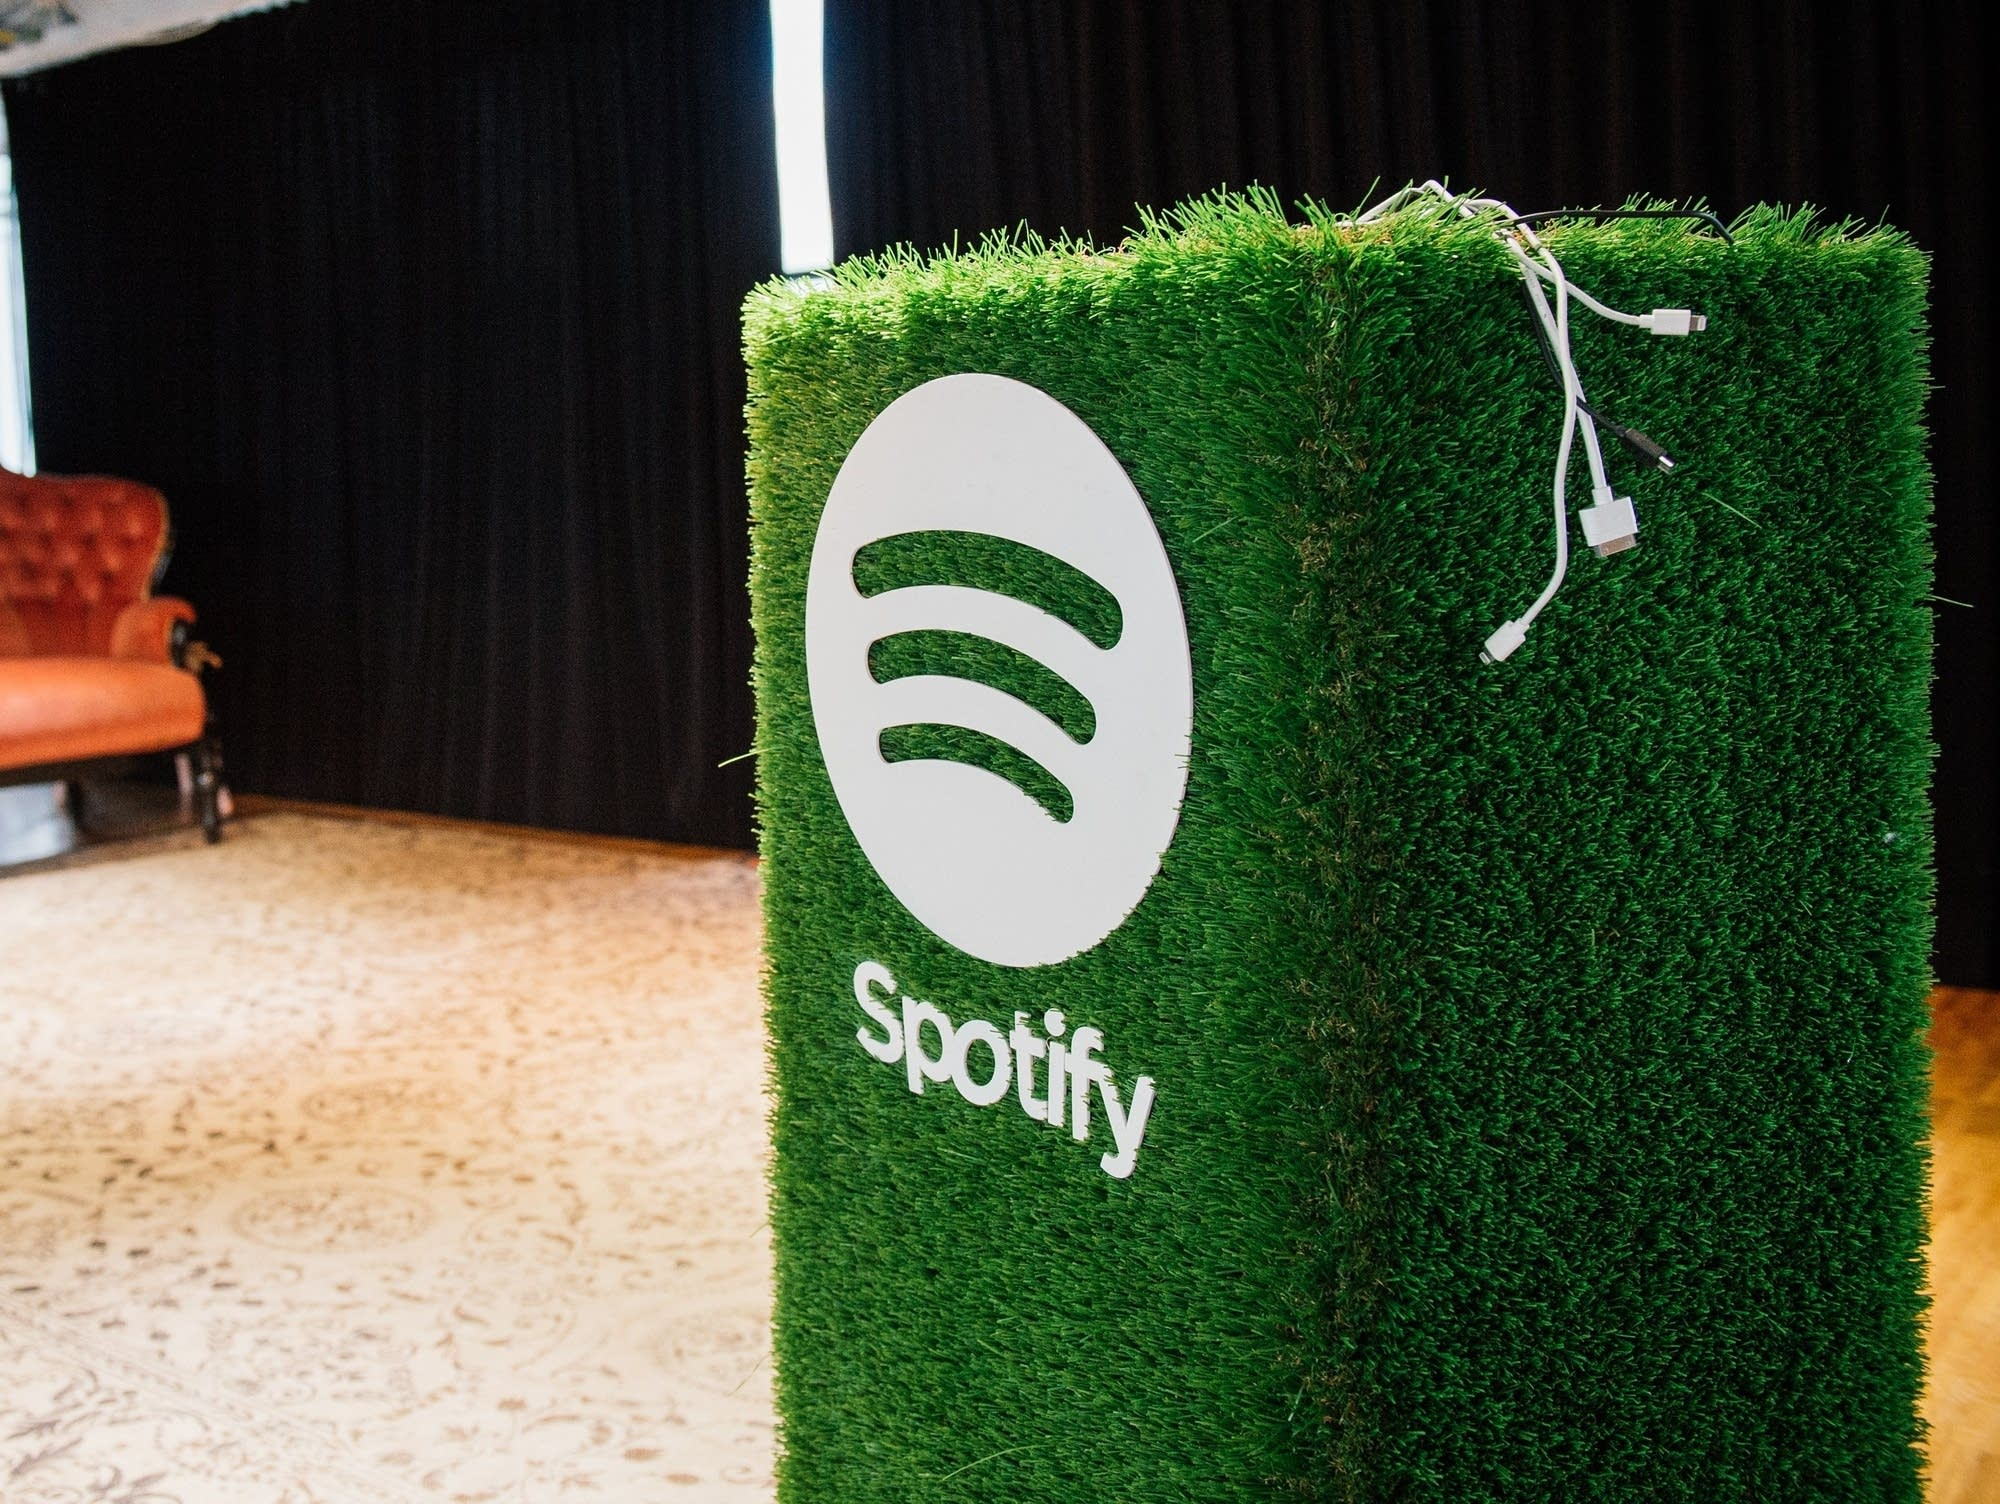 A speaker with the Spotify logo is pictured at the company headquarters.